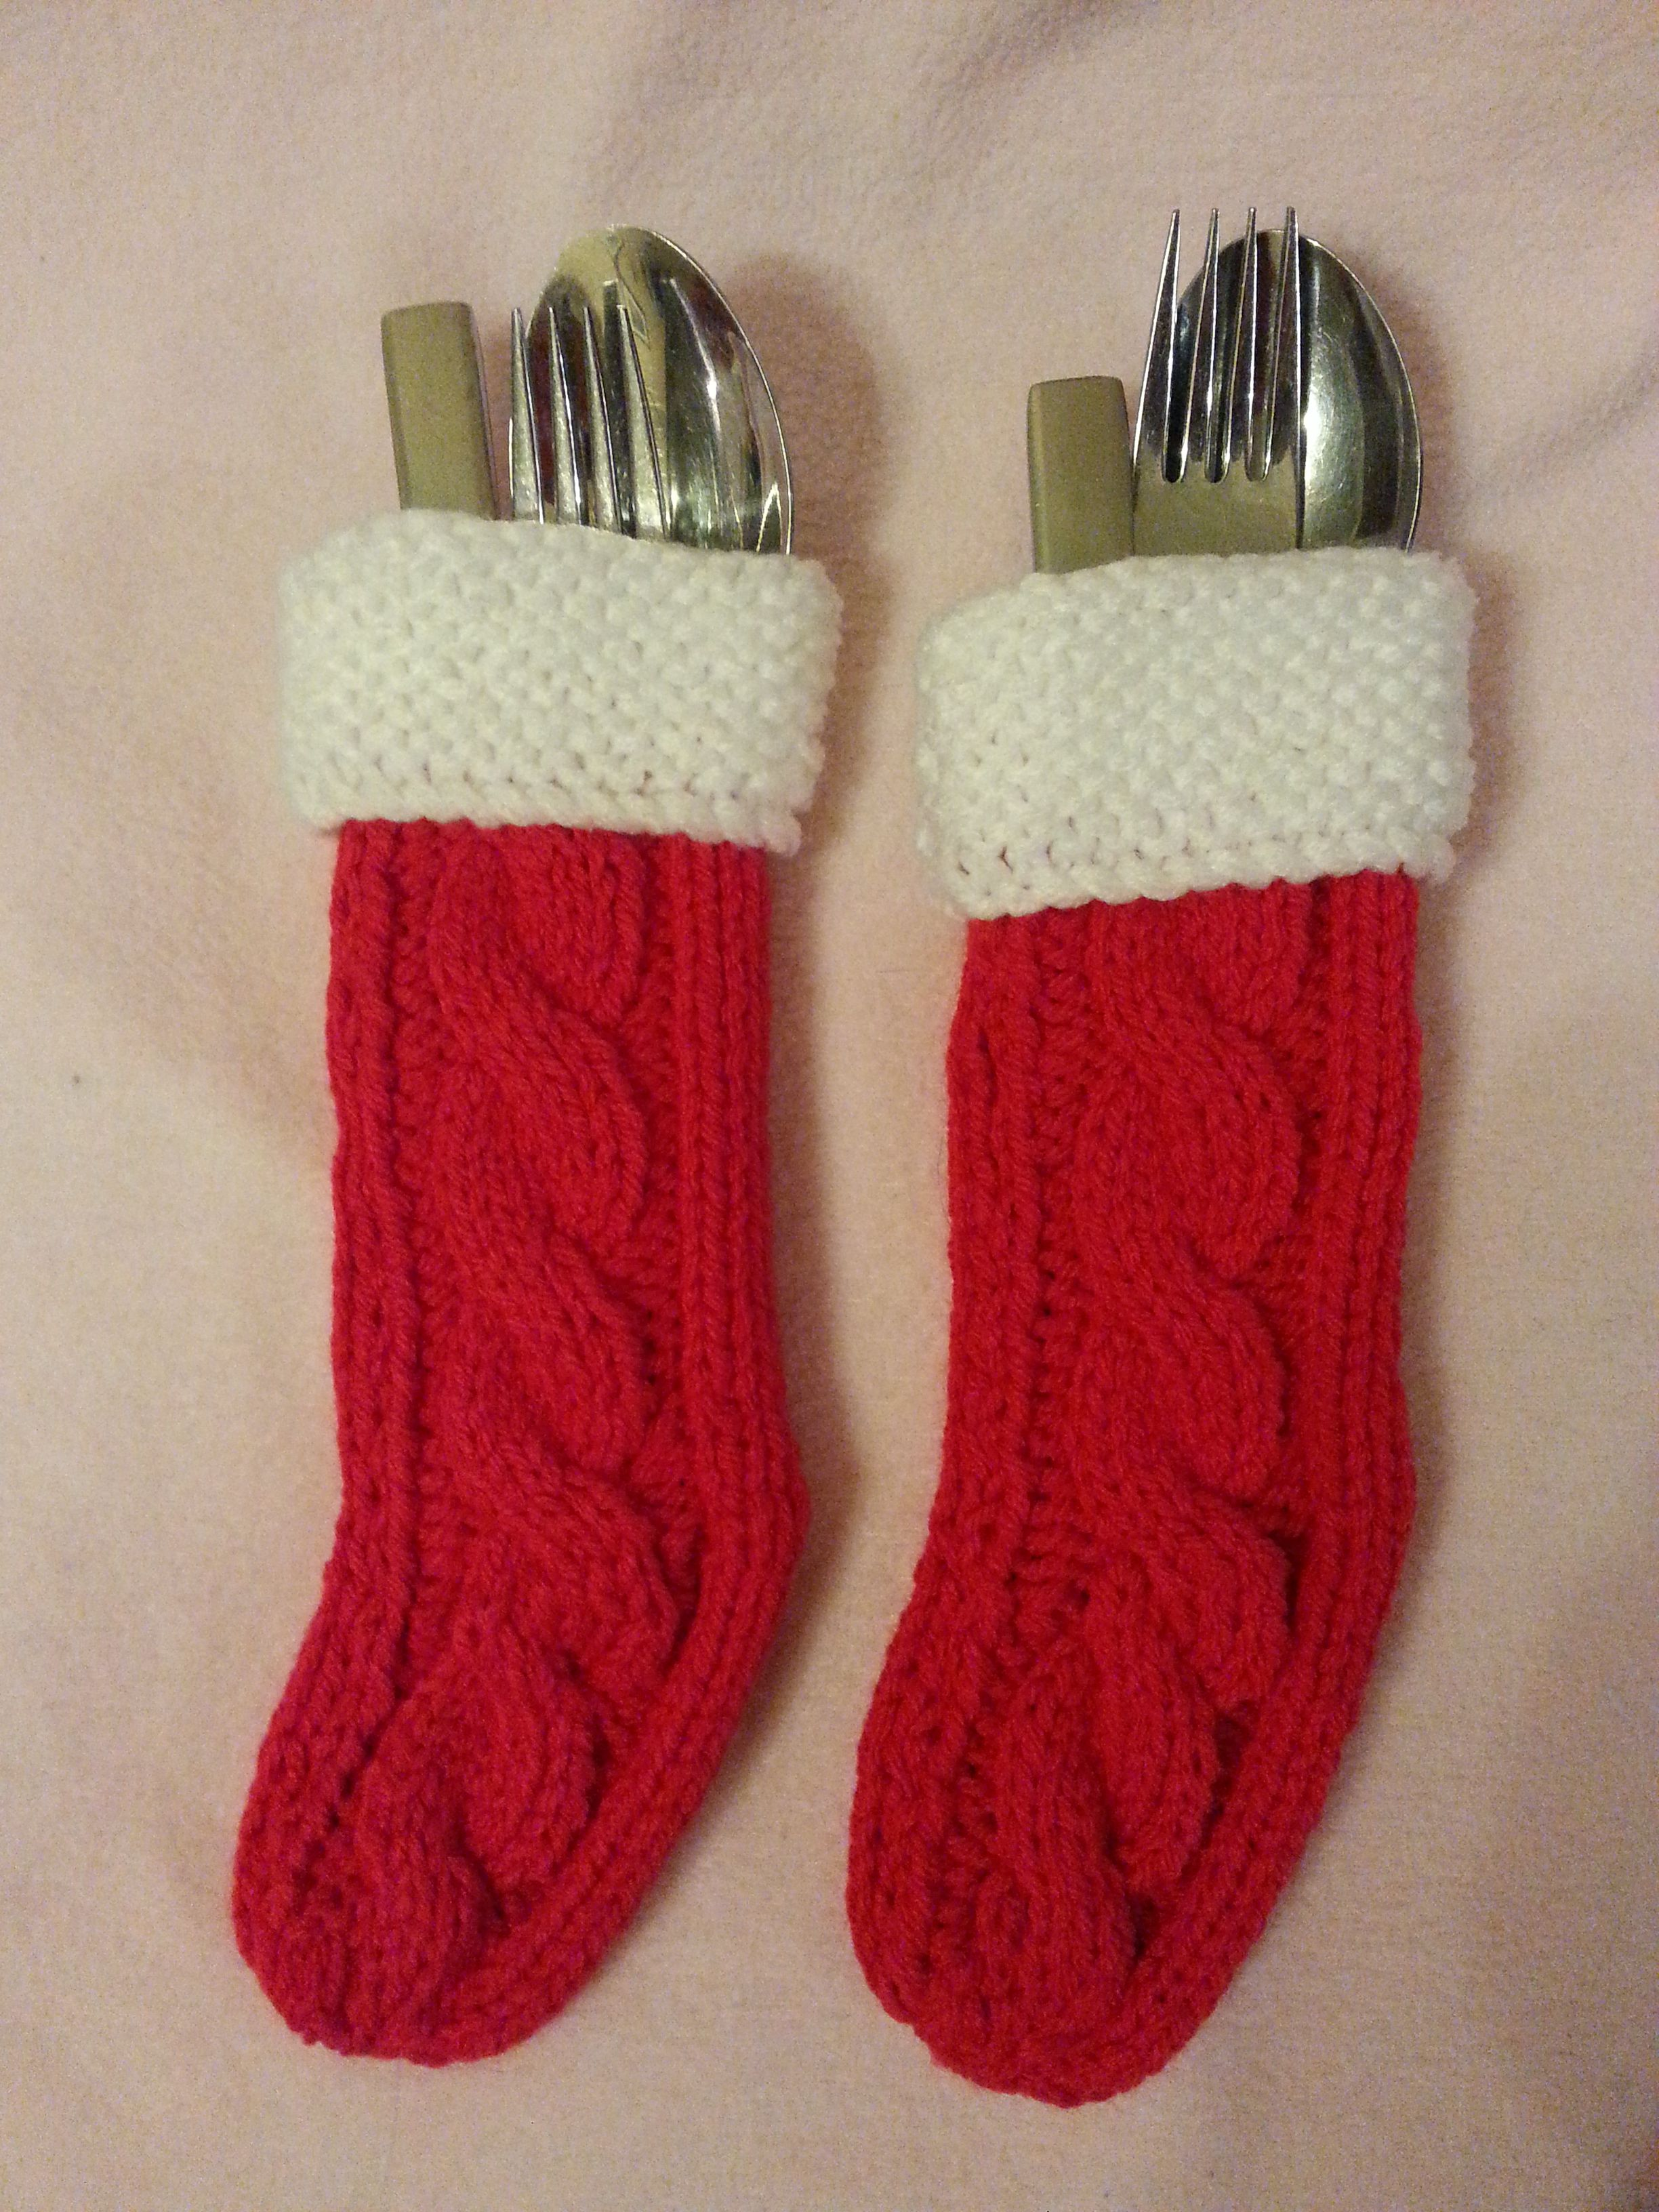 Knitting Wool Holder Hobbycraft : Christmas stocking cutlery holders knitted to my own